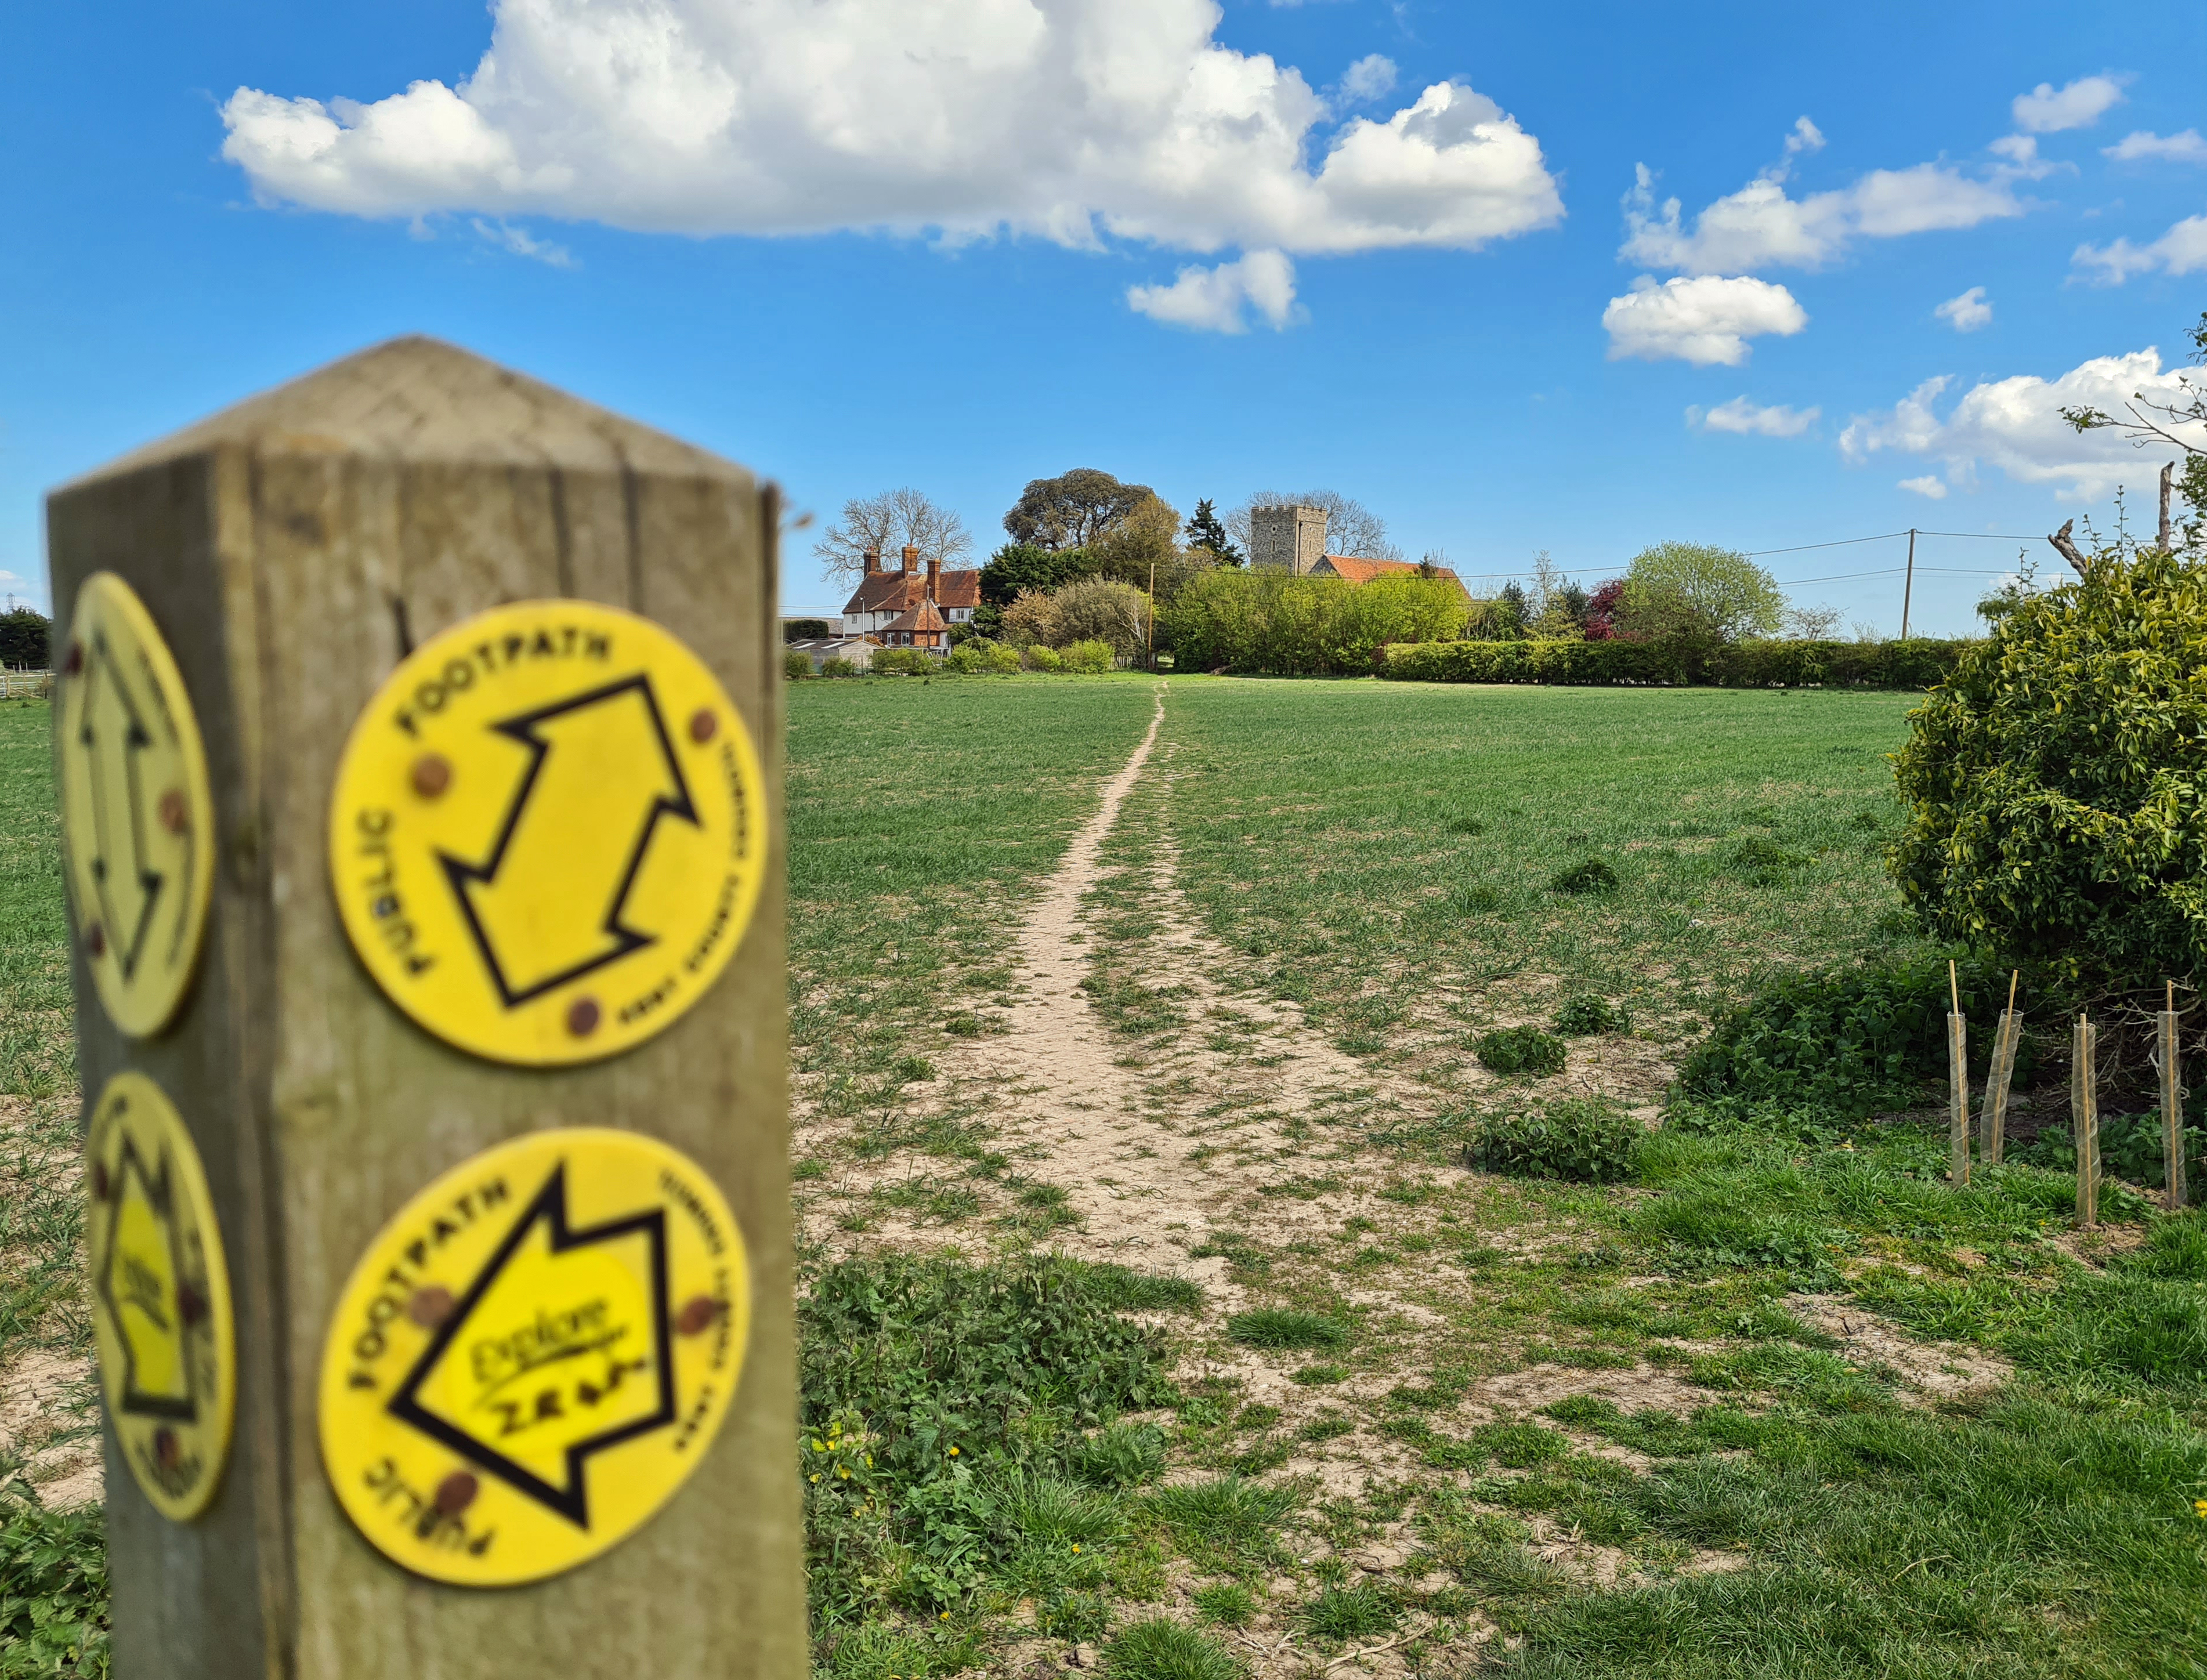 My trail was very much a series of paths across agricultural fields and along quiet roads linking hamlets and isolated churches.